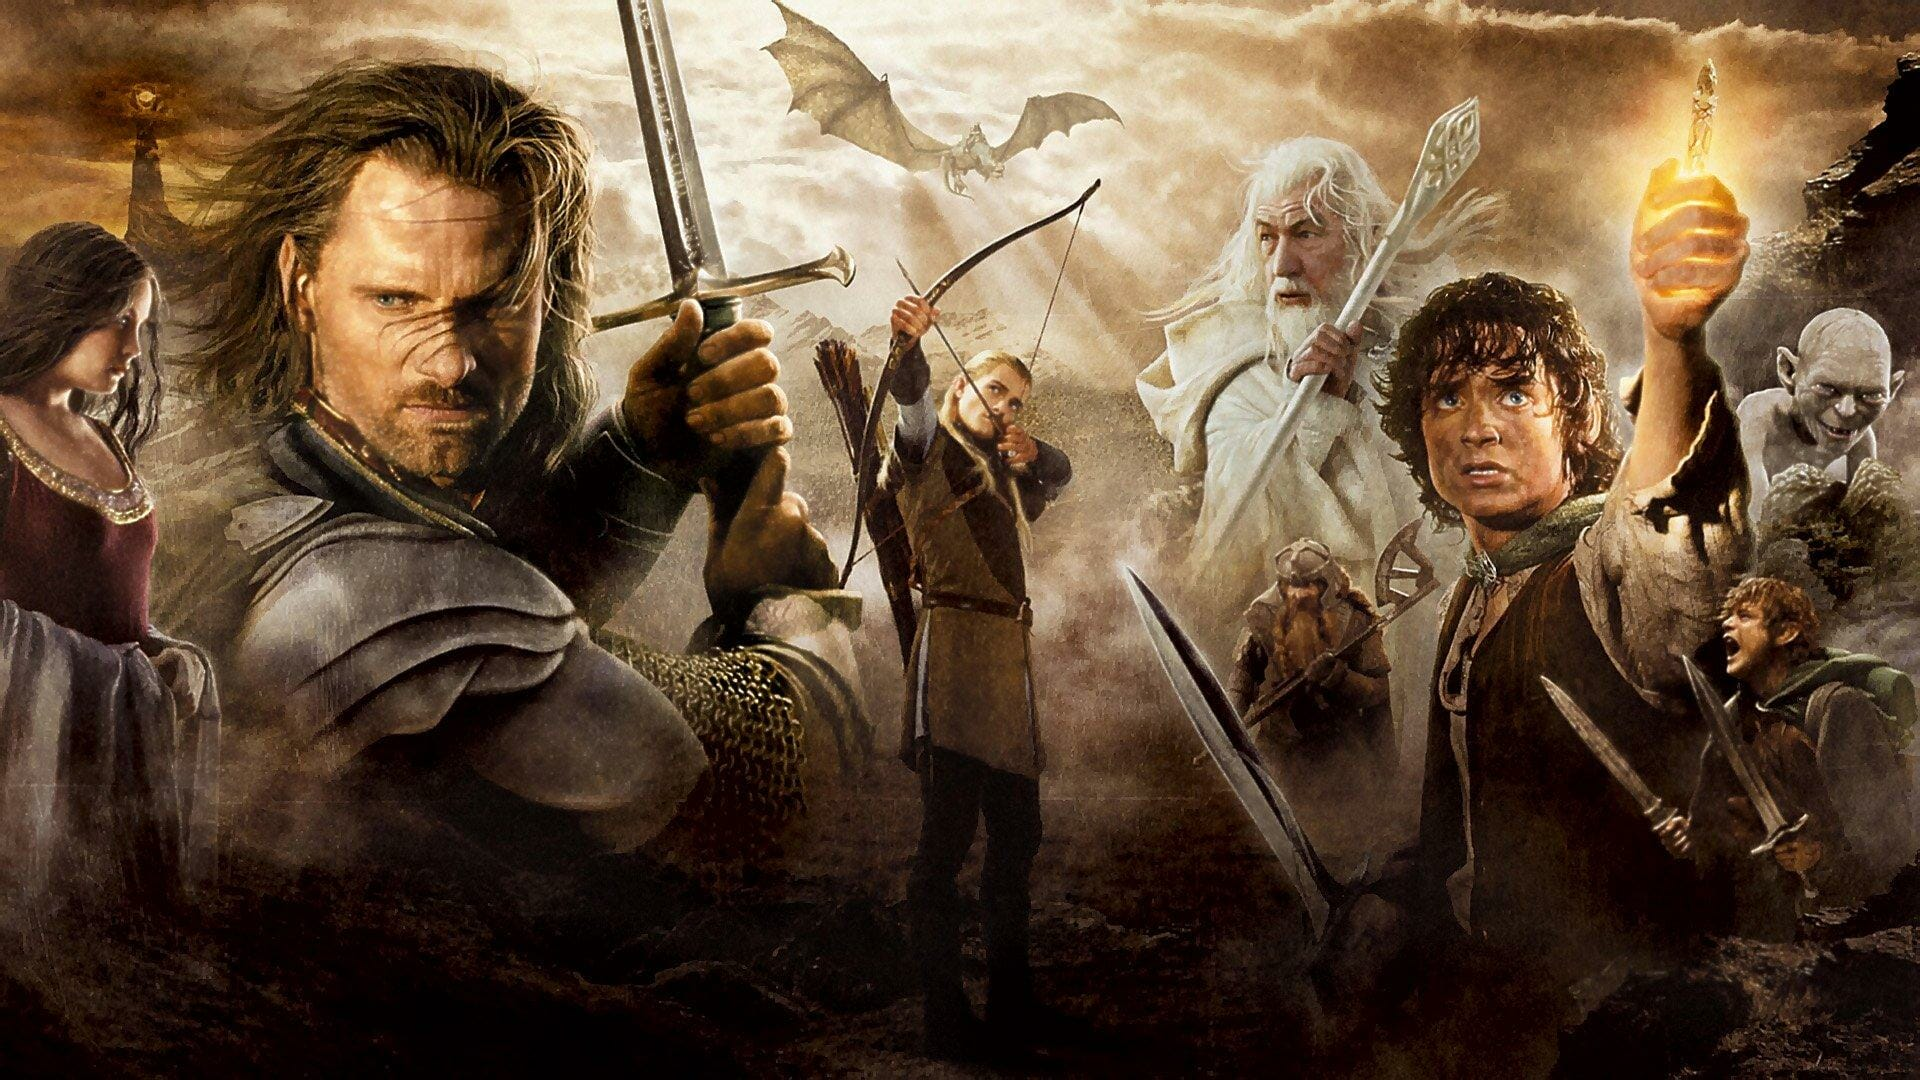 The LoThe Lord of the Rings: The Return of the King (2003)rd of the Rings: The Return of the King (2003)